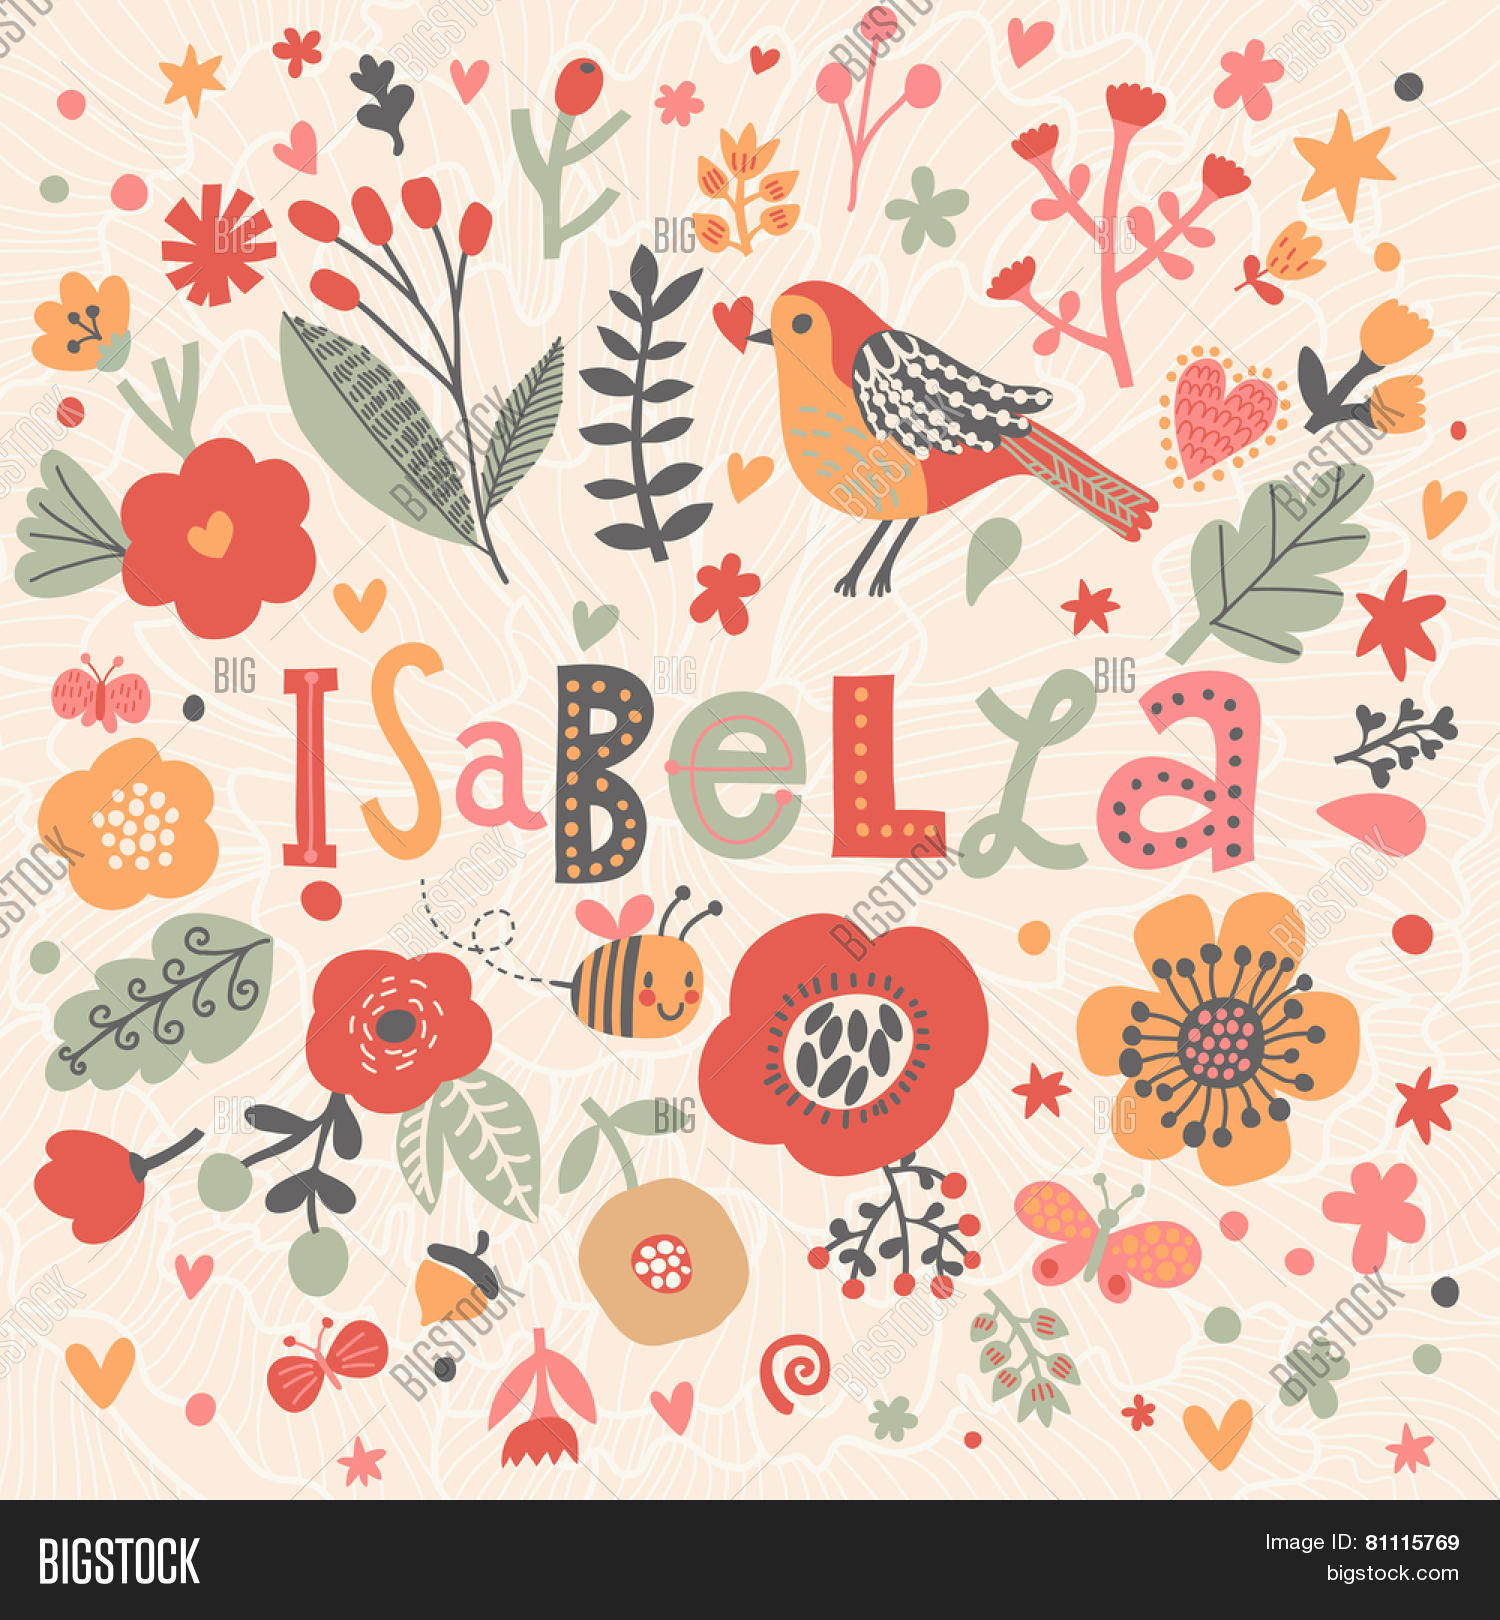 Isabella Name Design